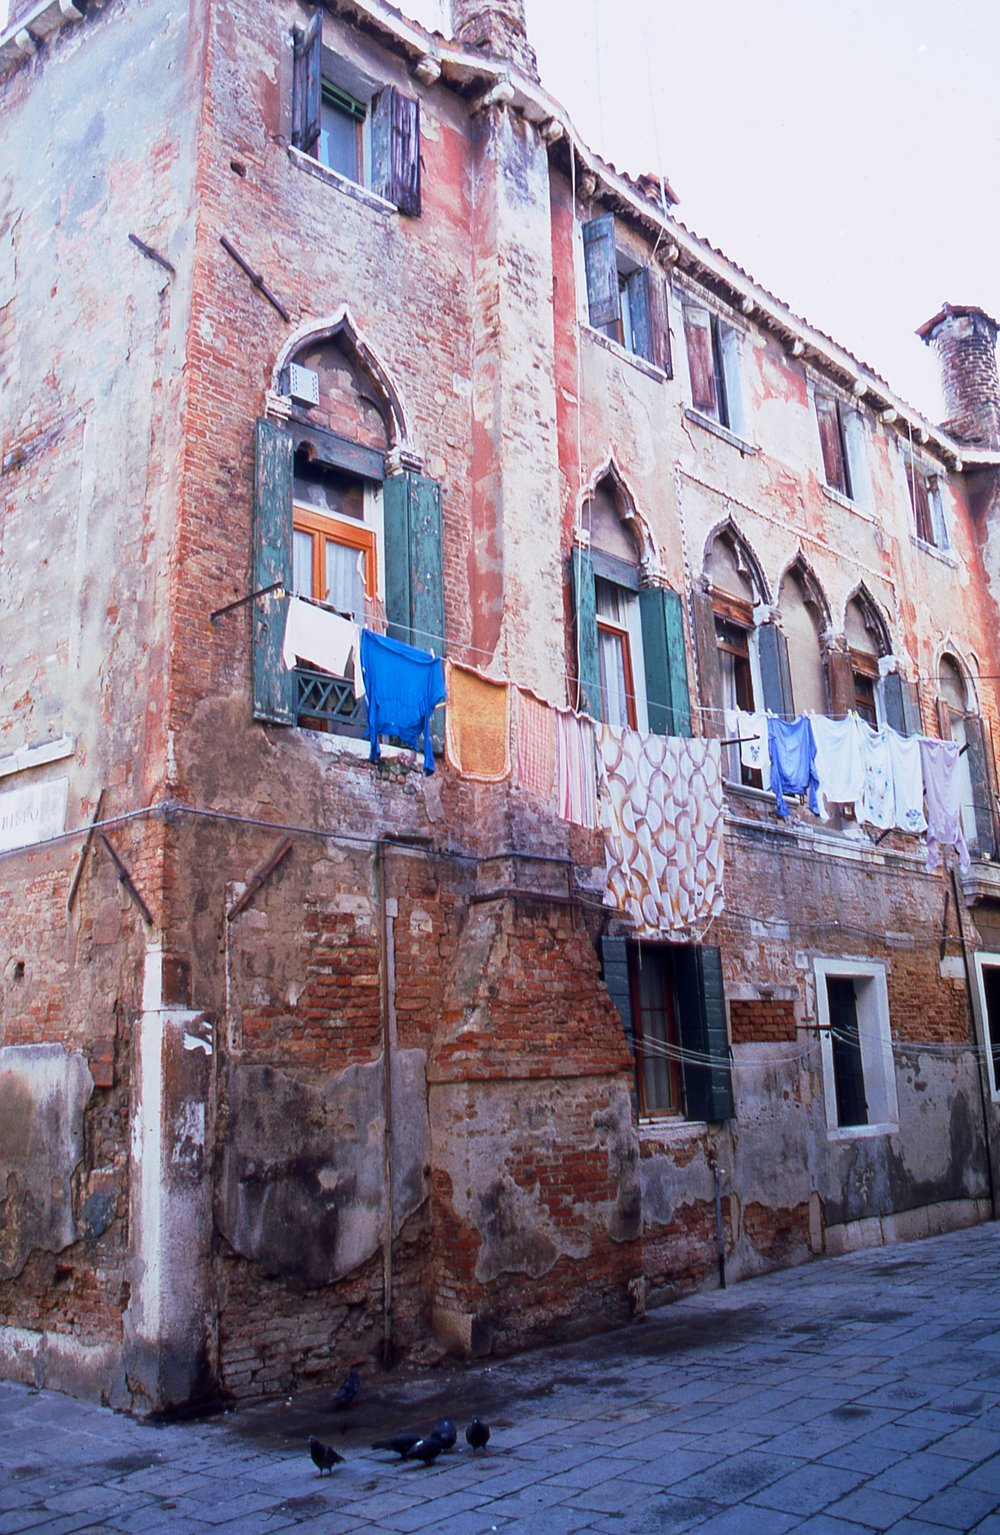 Venice | House of Venice eaten by water | photo sandrine cohen